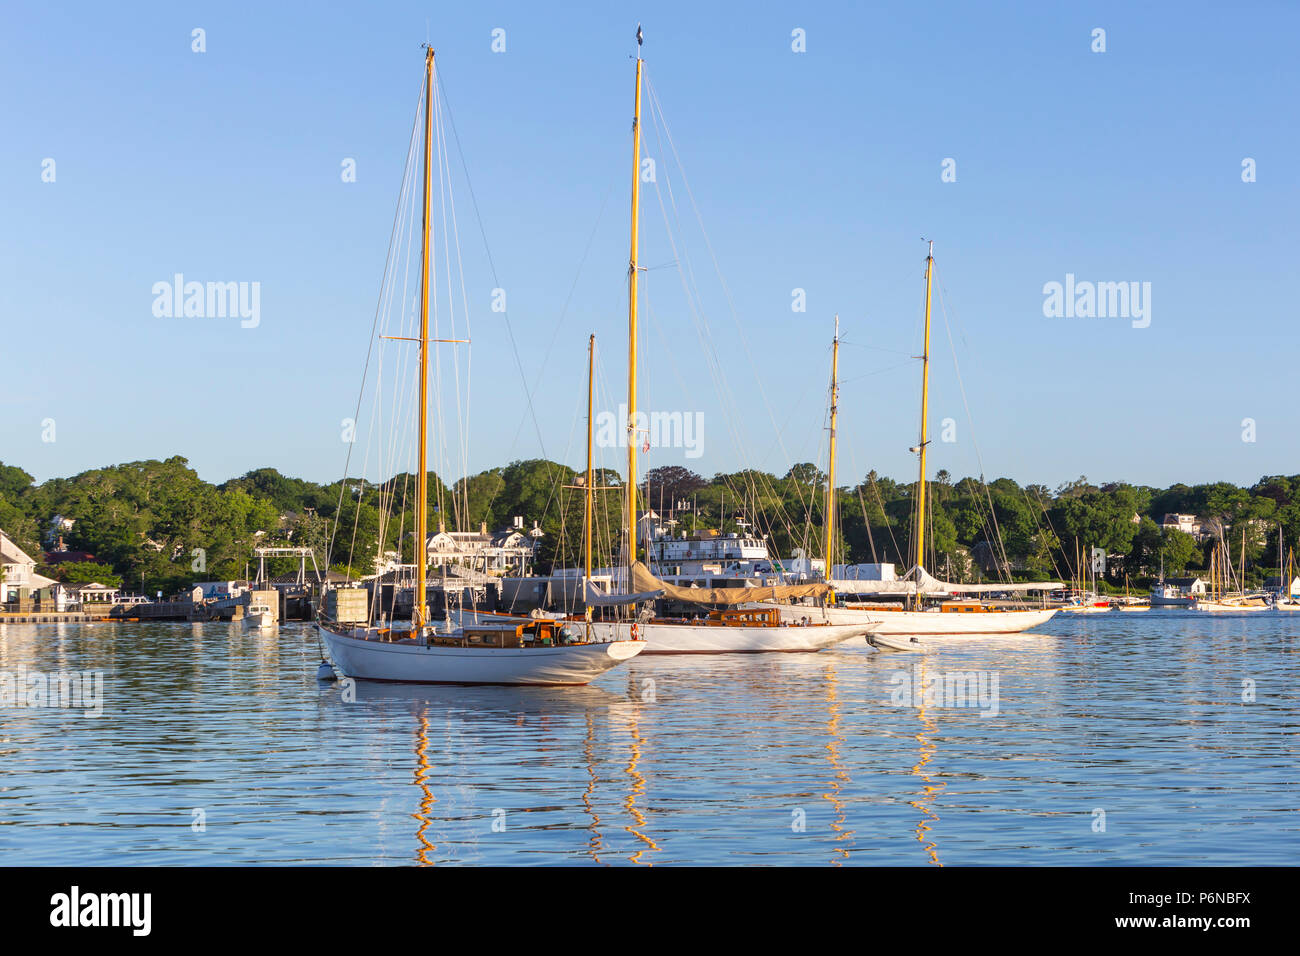 Sail Martha's Vineyard yawl 'Mah Jong' and other wooden boats moored in Vineyard Haven harbor in Tisbury, Massachusetts on Martha's Vineyard. - Stock Image